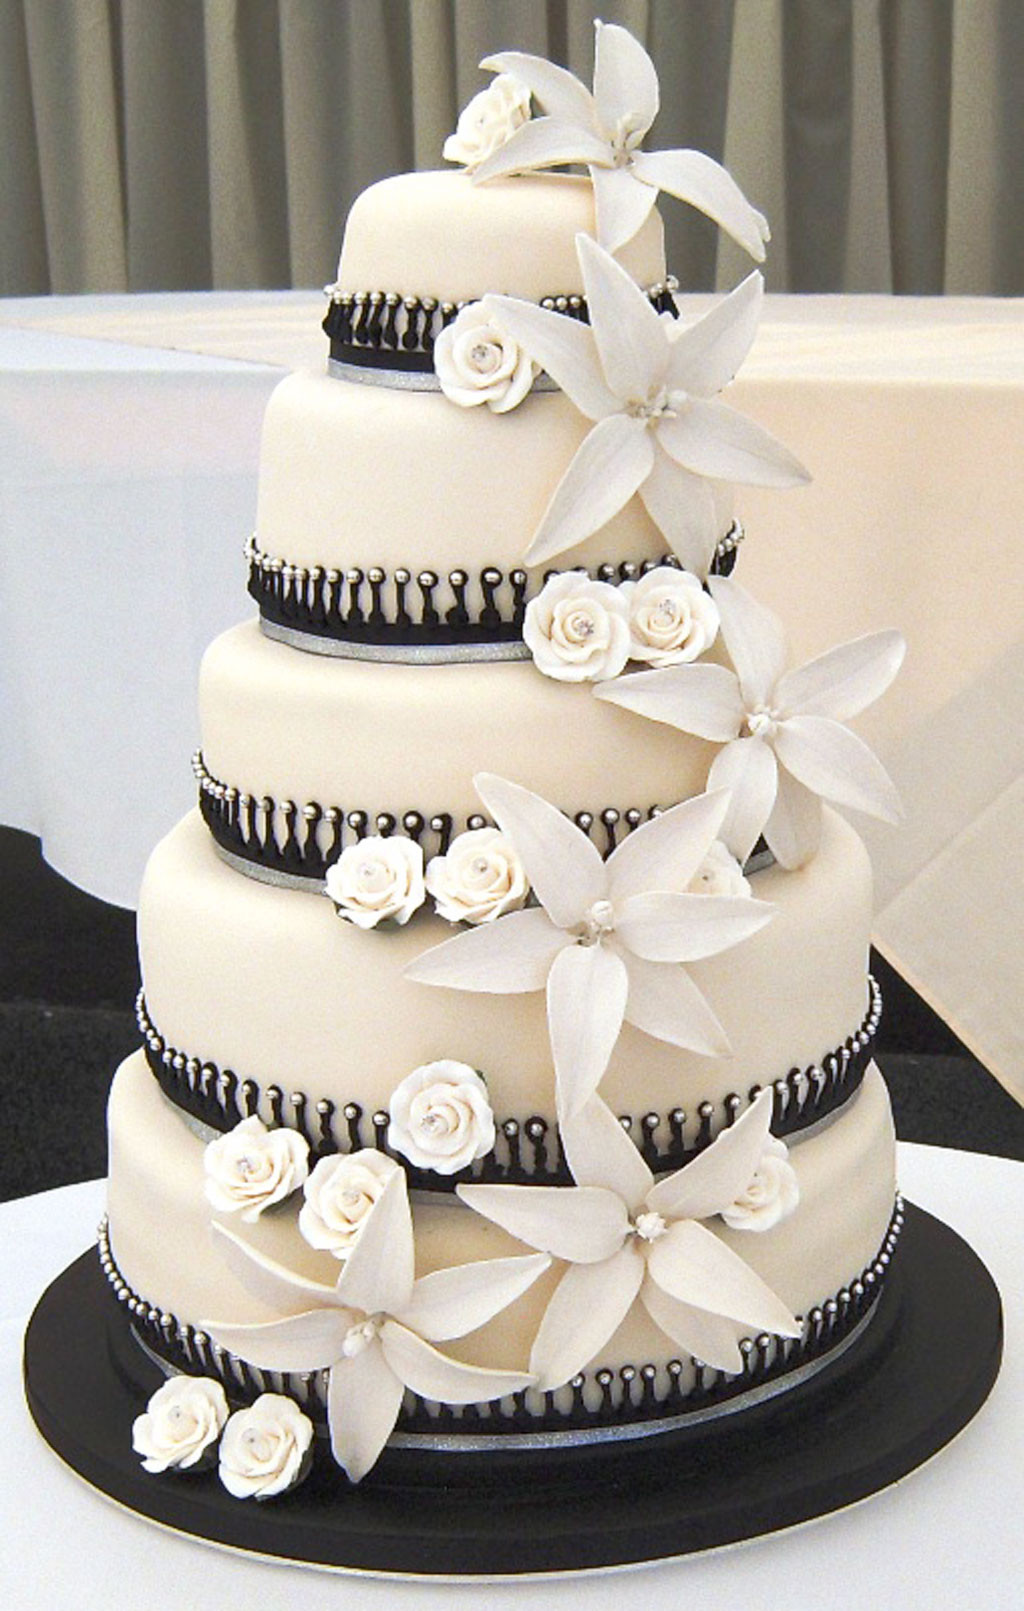 Wedding Cakes Styles  Black White Wedding Cake Designs Wedding Cake Cake Ideas